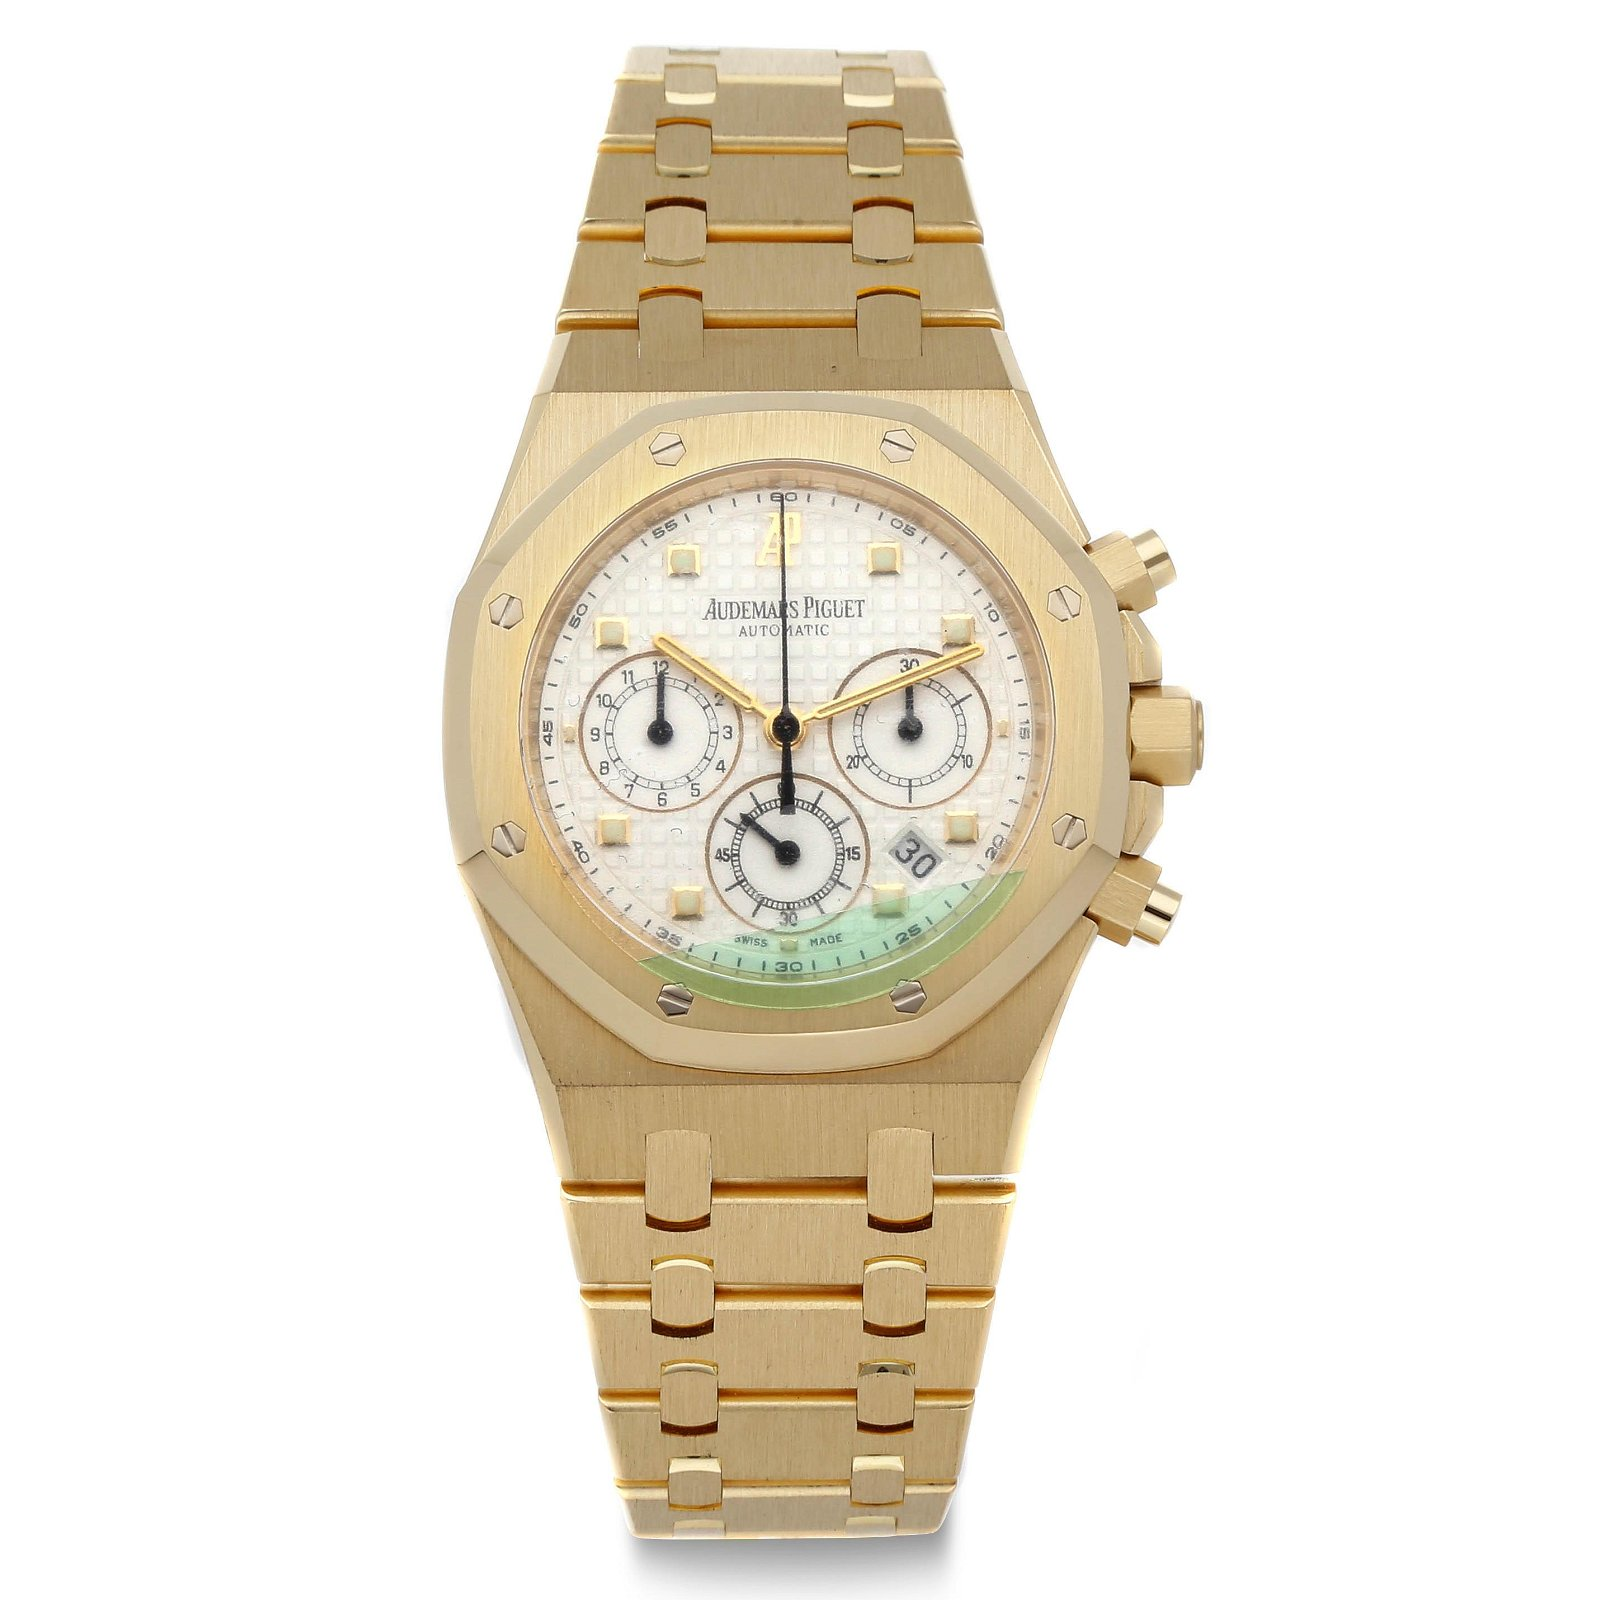 AUDEMARS PIGUET, ROYAL OAK CHRONOGRAPH, 18K GOLD, REF.